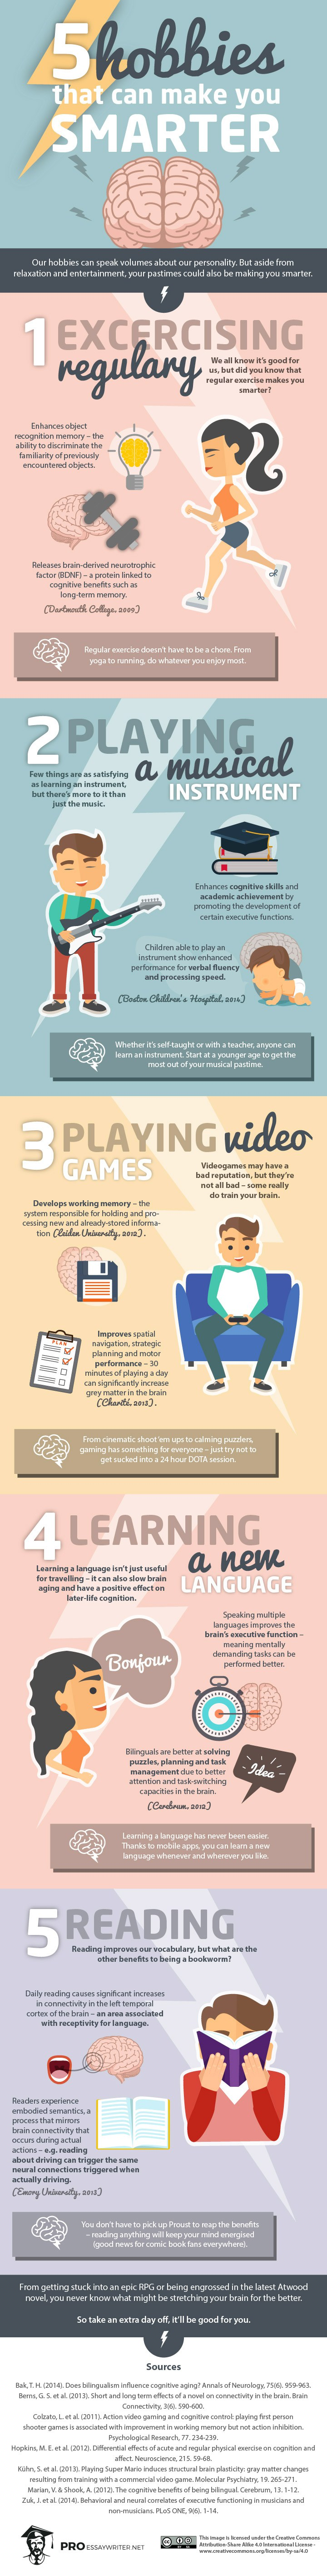 5 hobbies that will make you smarter infographic